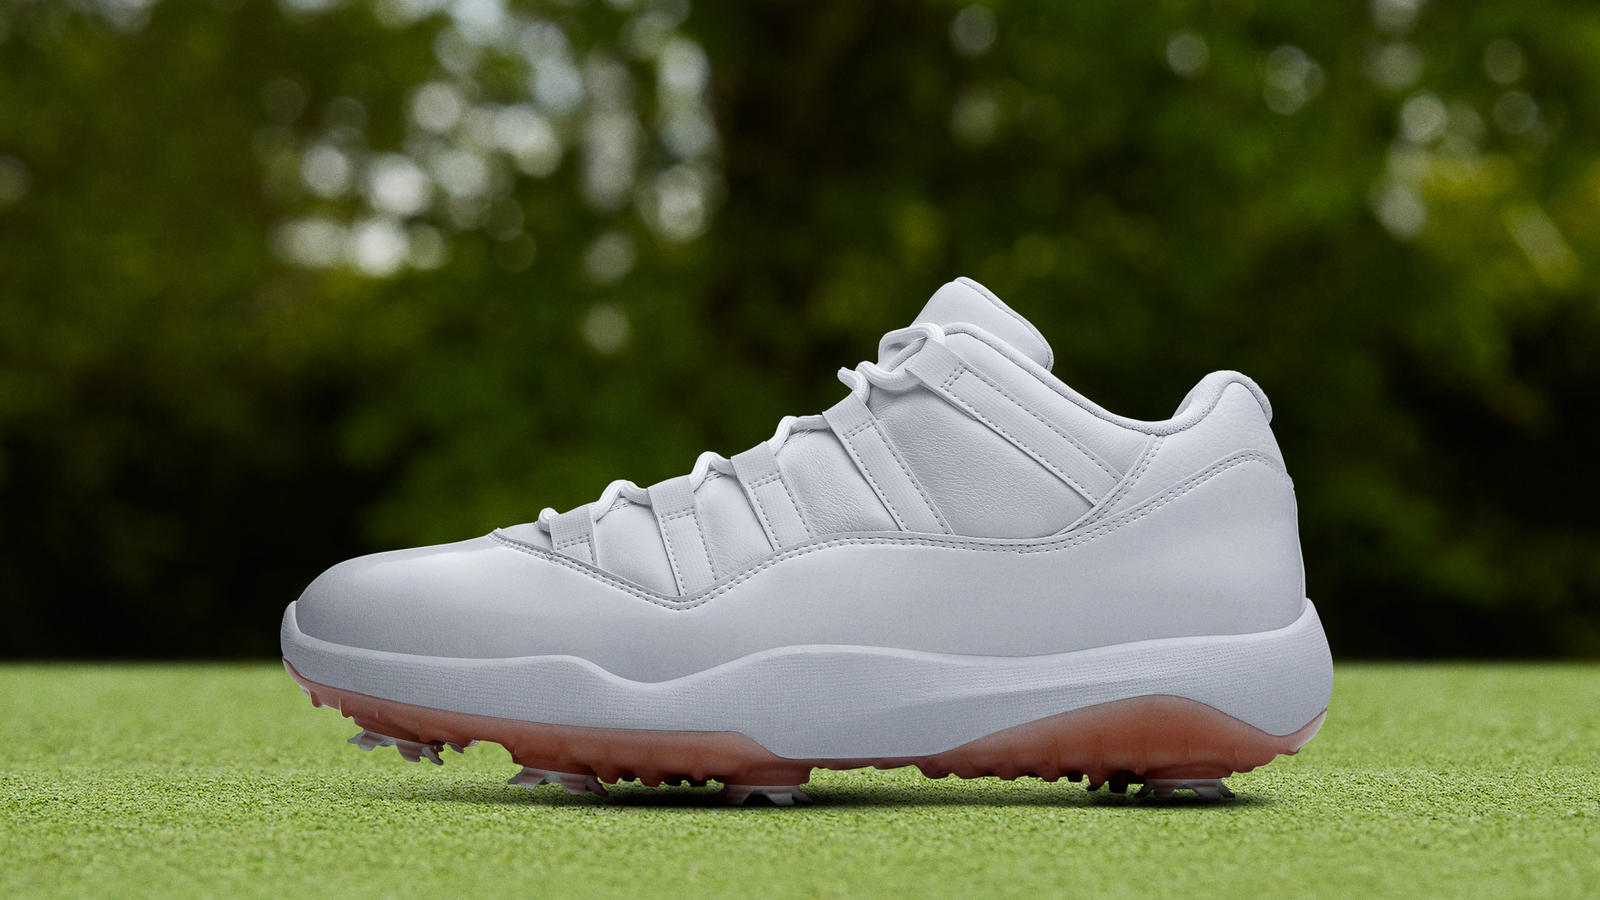 f5f236a41de Air Jordan 11 Low Golf Official Image and Release Date - Nike News